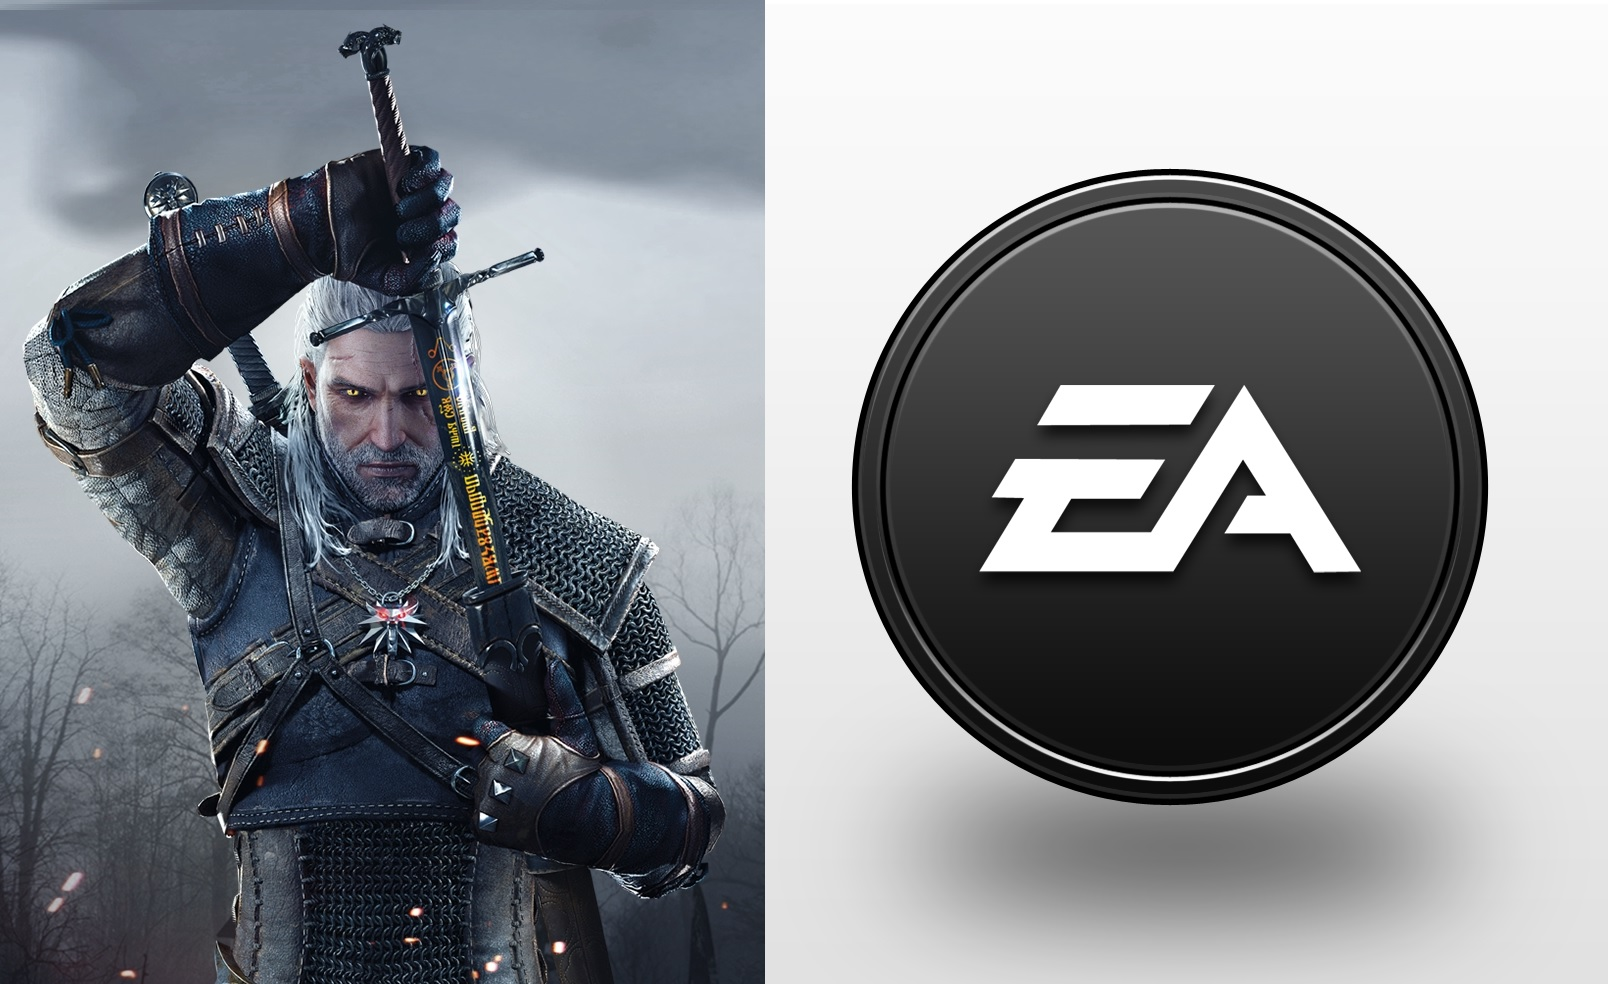 Witcher 3 CD Projekt Red EA takeover